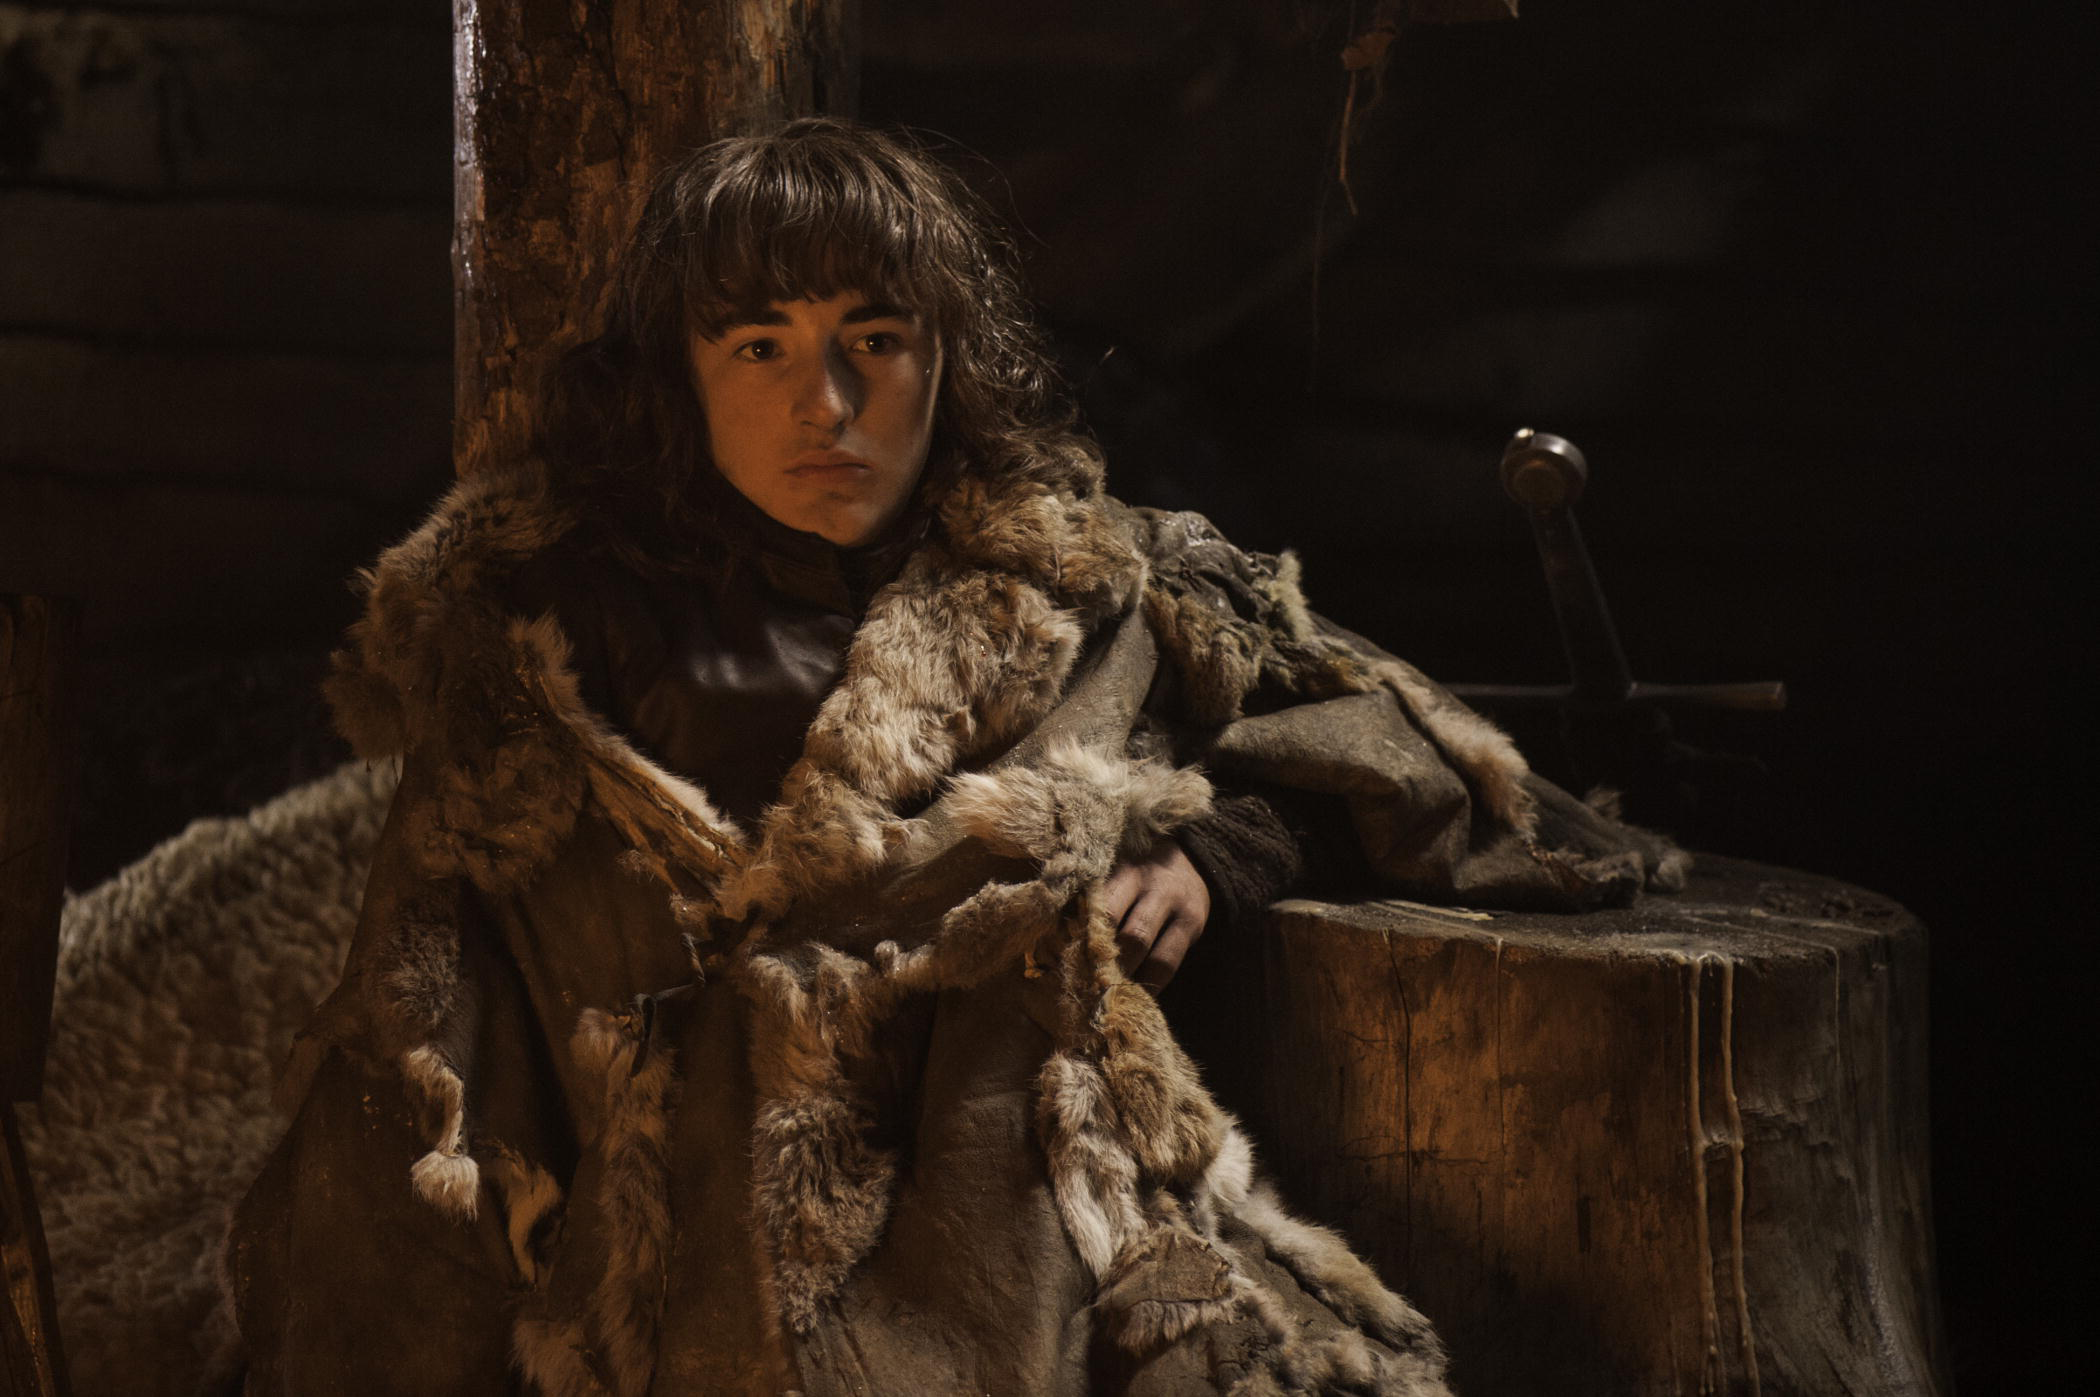 Isaac Hempstead Wright as Bran Stark on HBO's 'Game of Thrones'